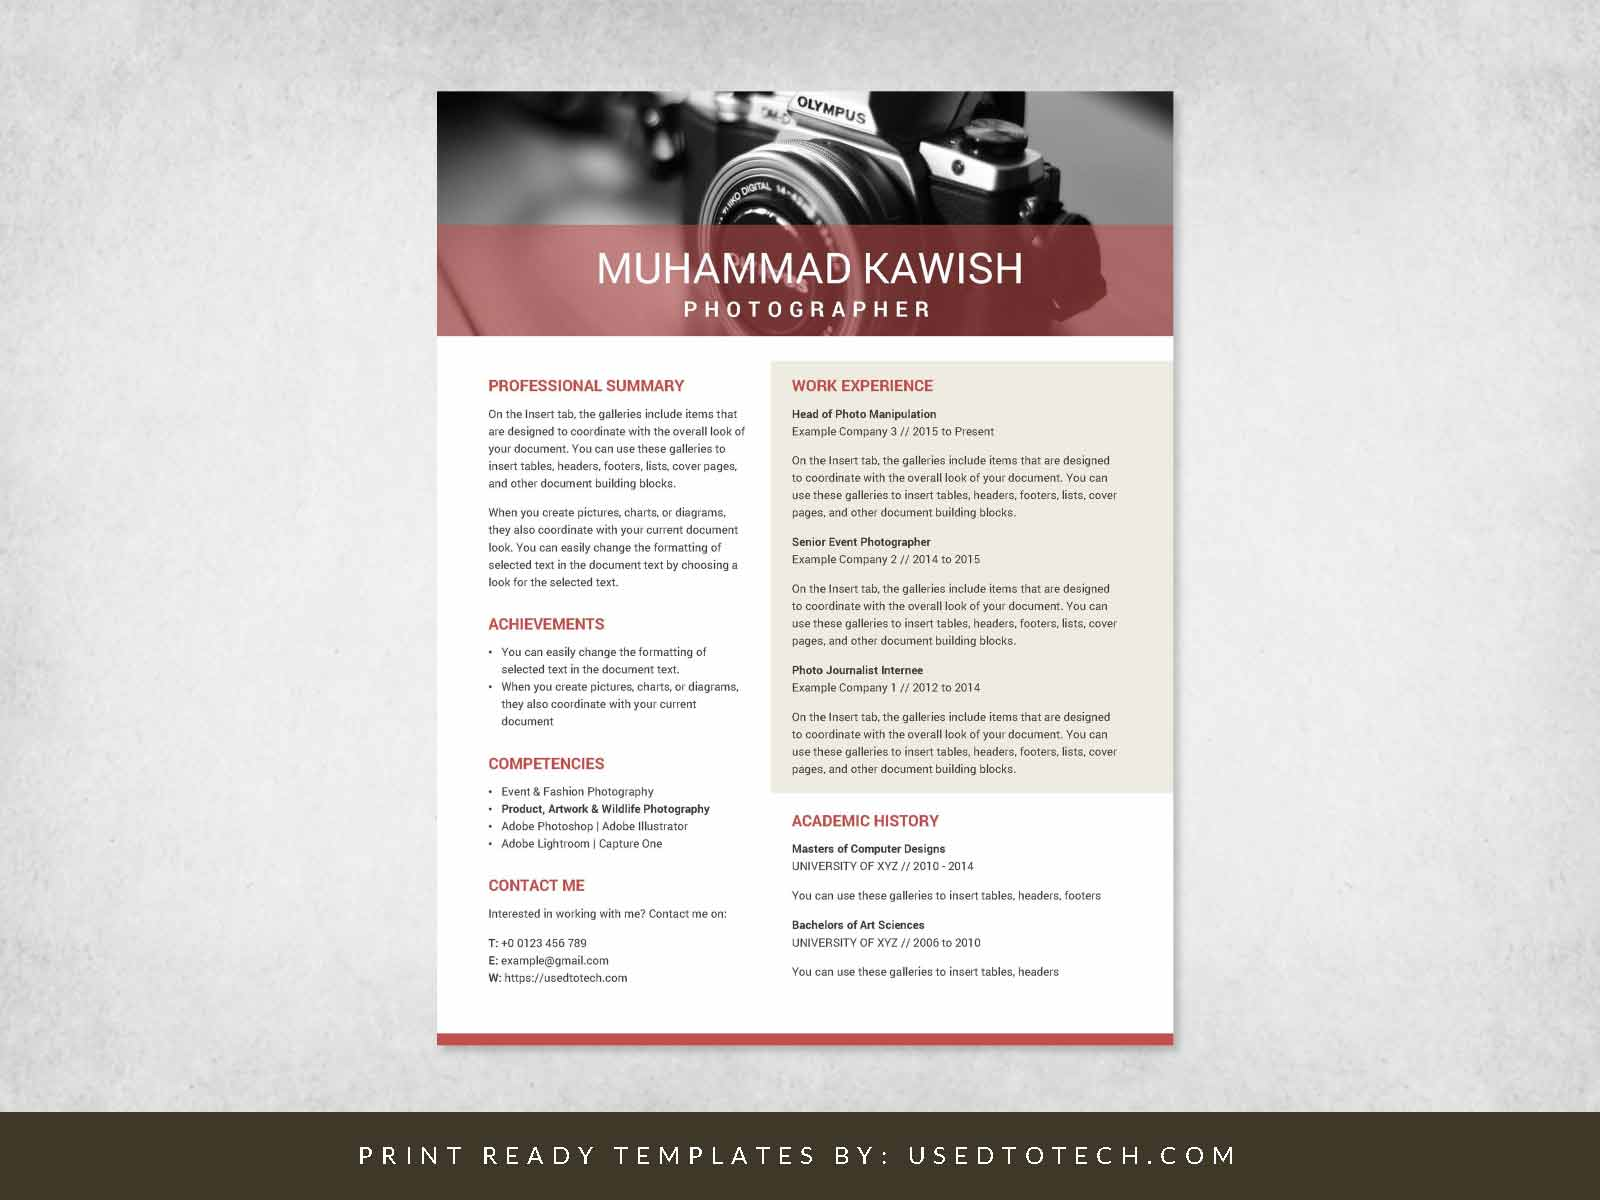 Editable Infographic Resume in Microsoft Word for Professionals